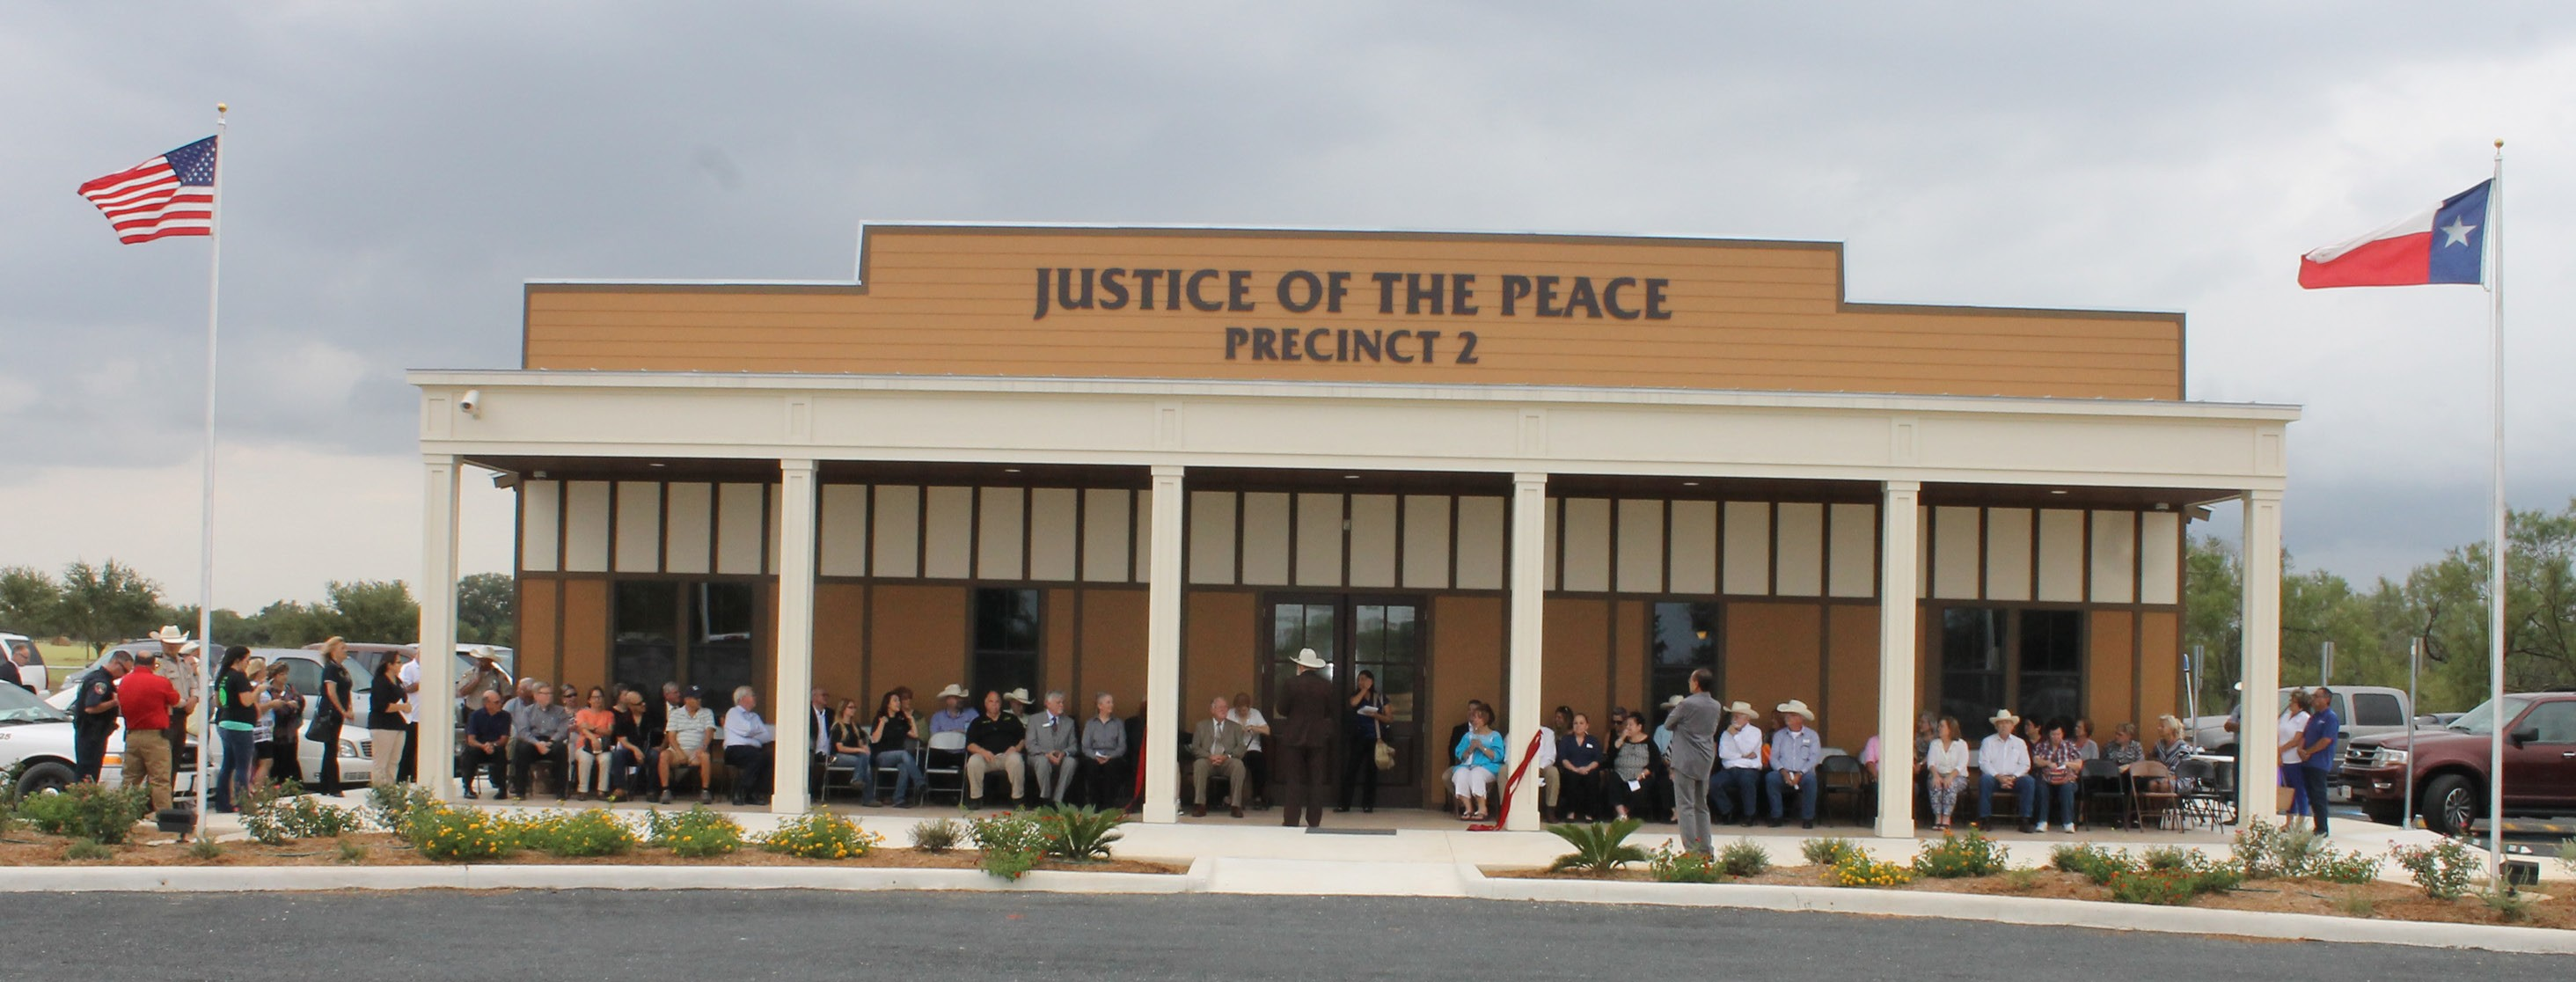 The new Precinct 2 Justice of the Peace building on FM 1375, near Lytle, September 10, prior to ribbon cutting when visiting officials addressed the crowd.